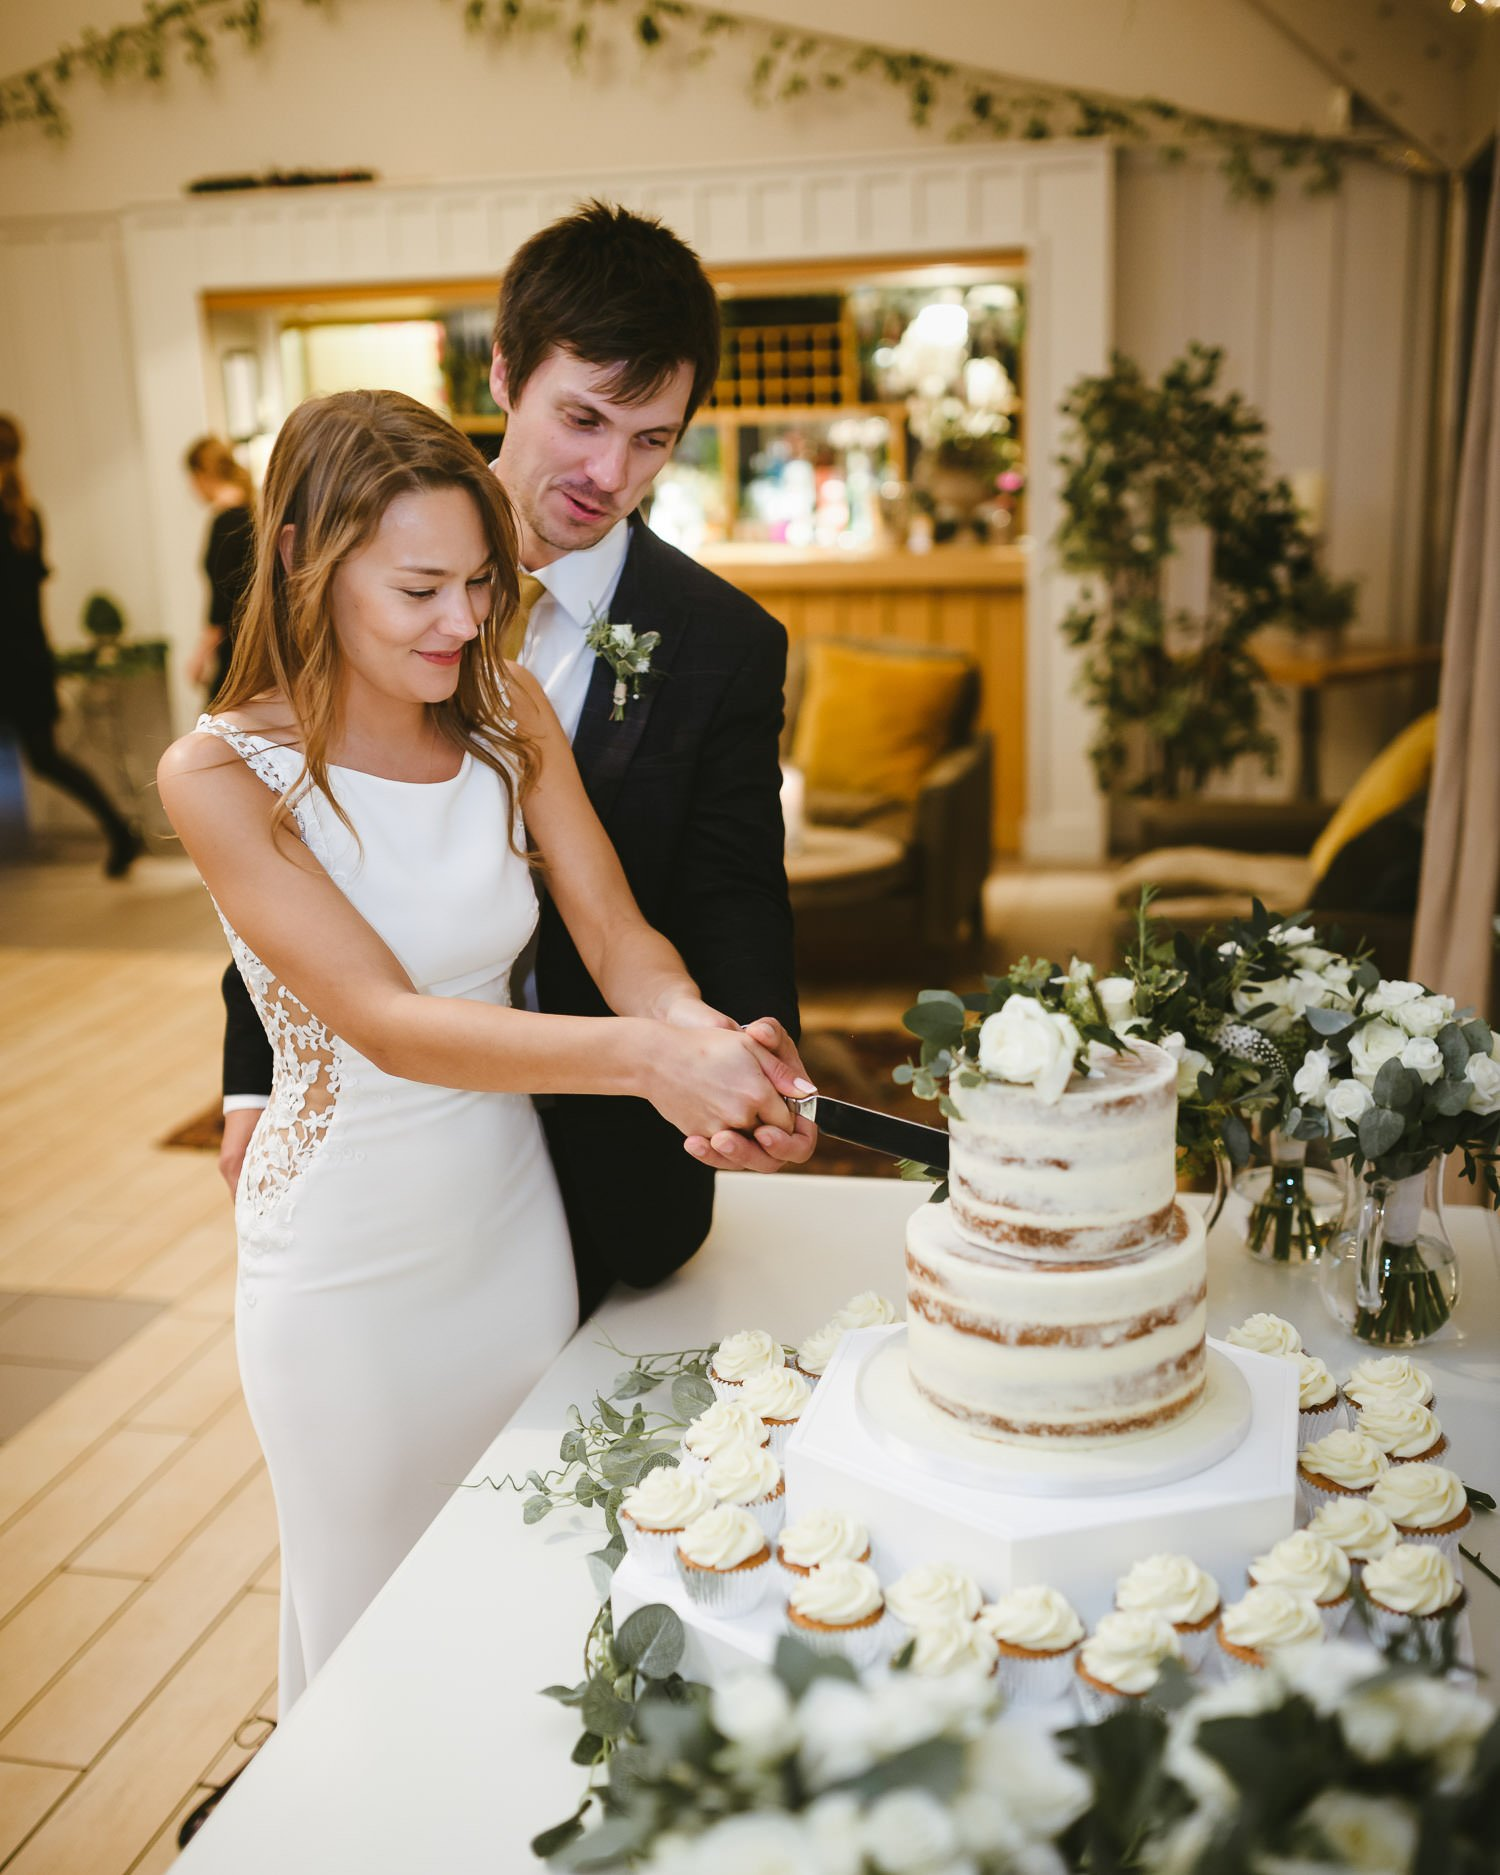 bride and groom cut wedding cake at Doddington Hall